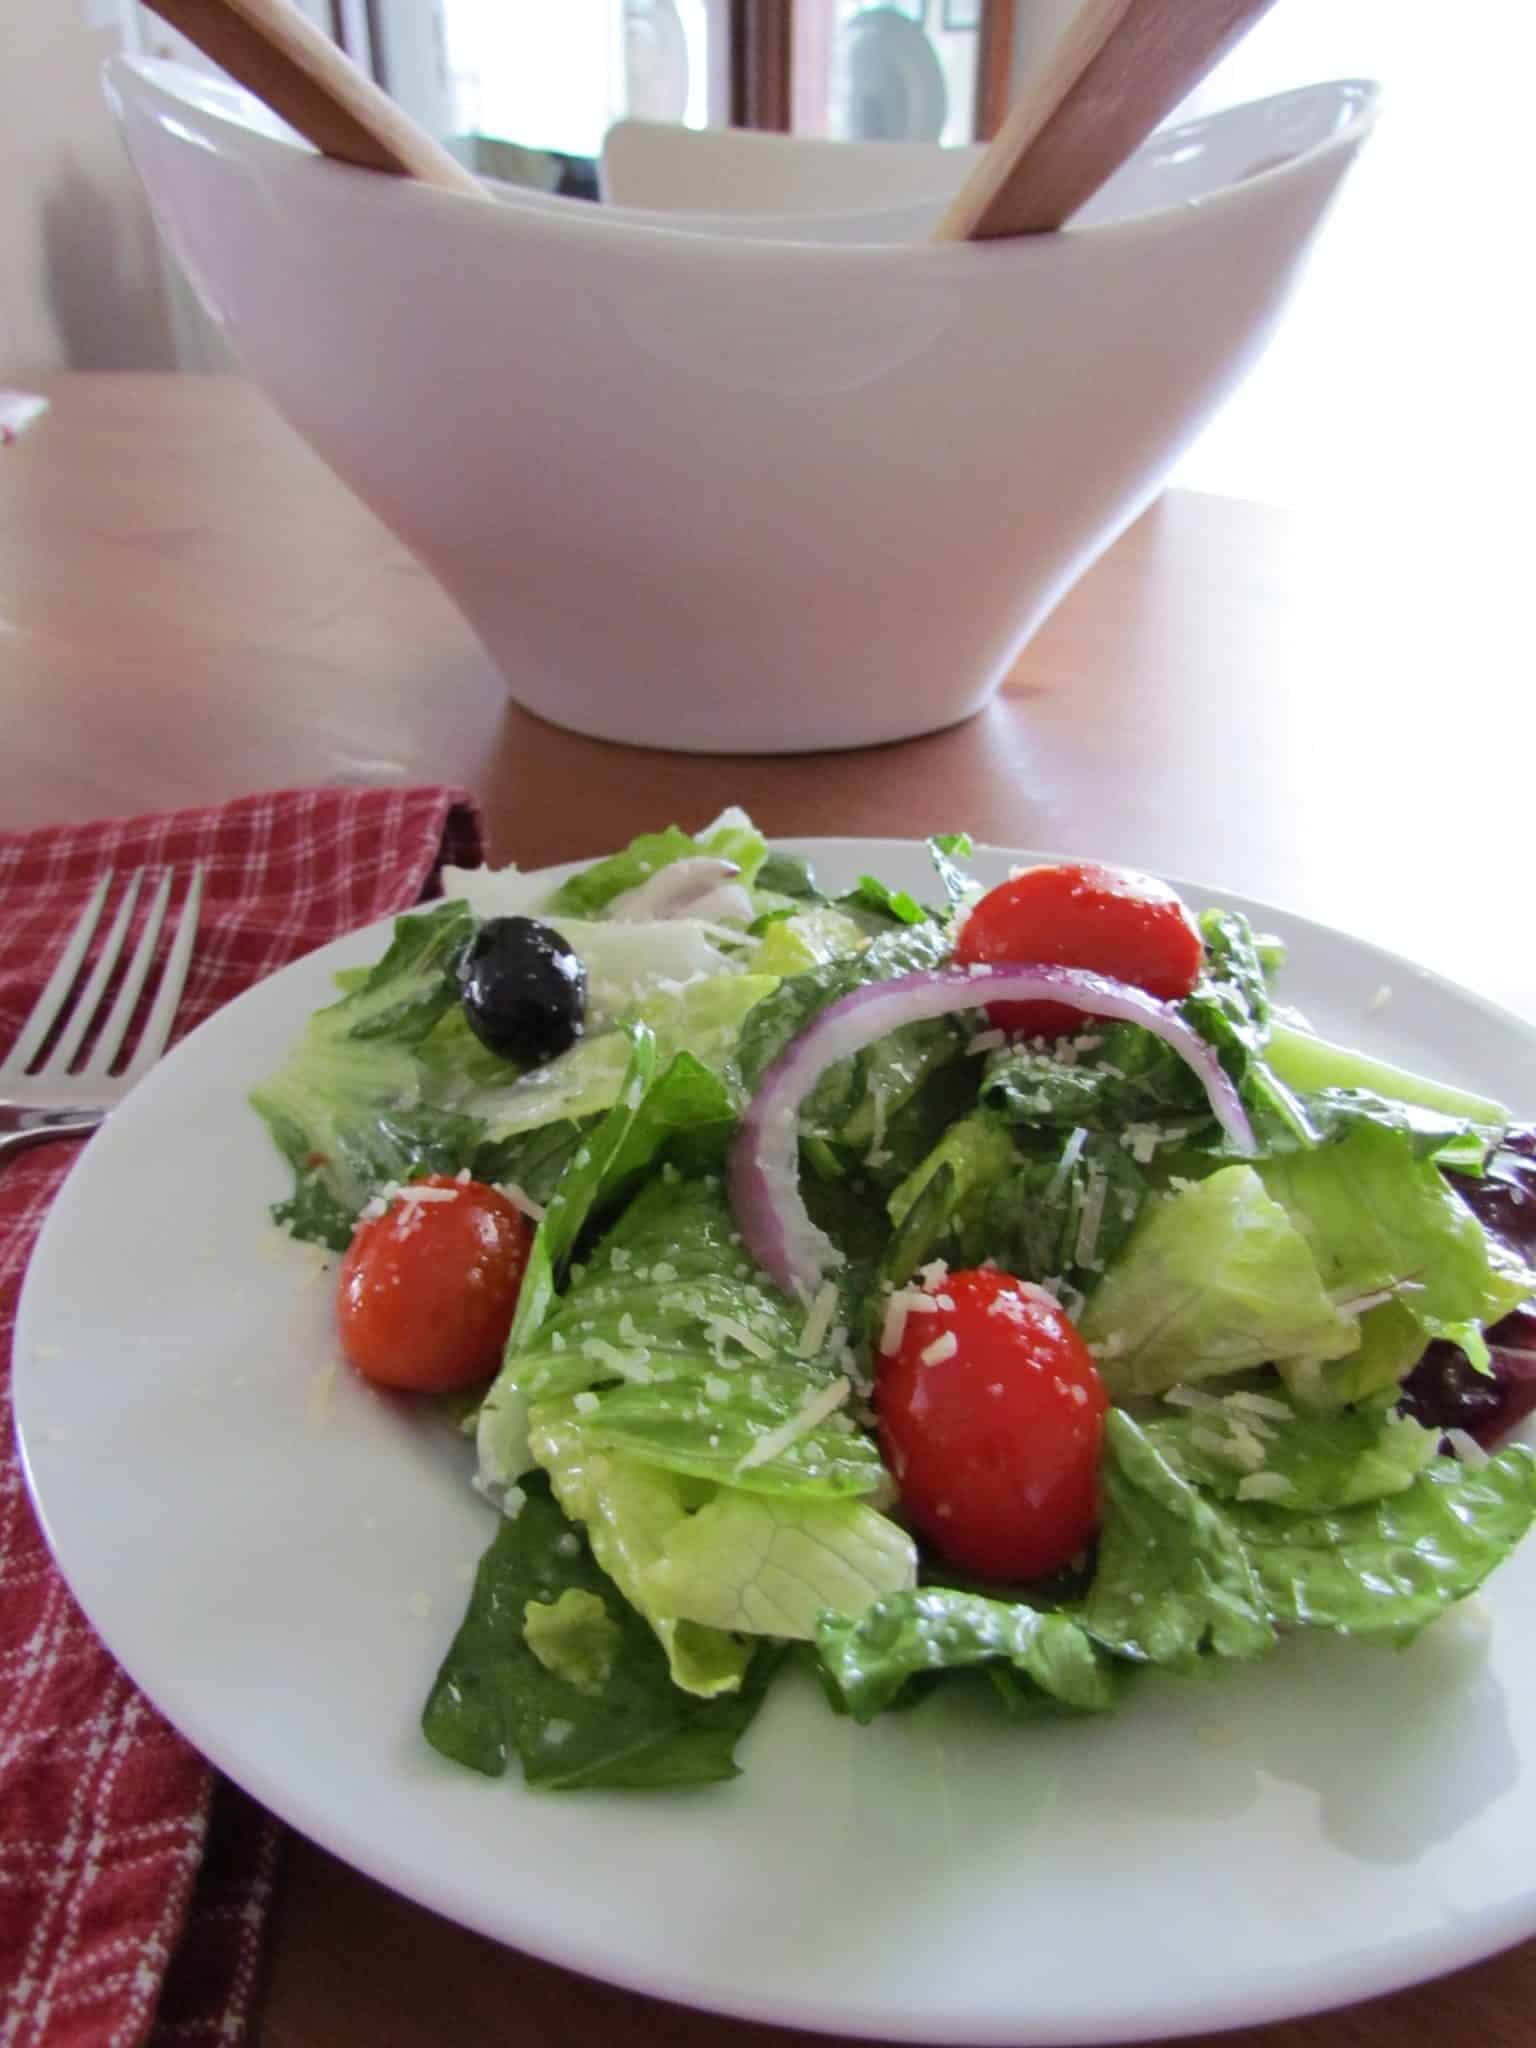 How Many Calories In Olive Garden Salad Home Design Ideas And Pictures